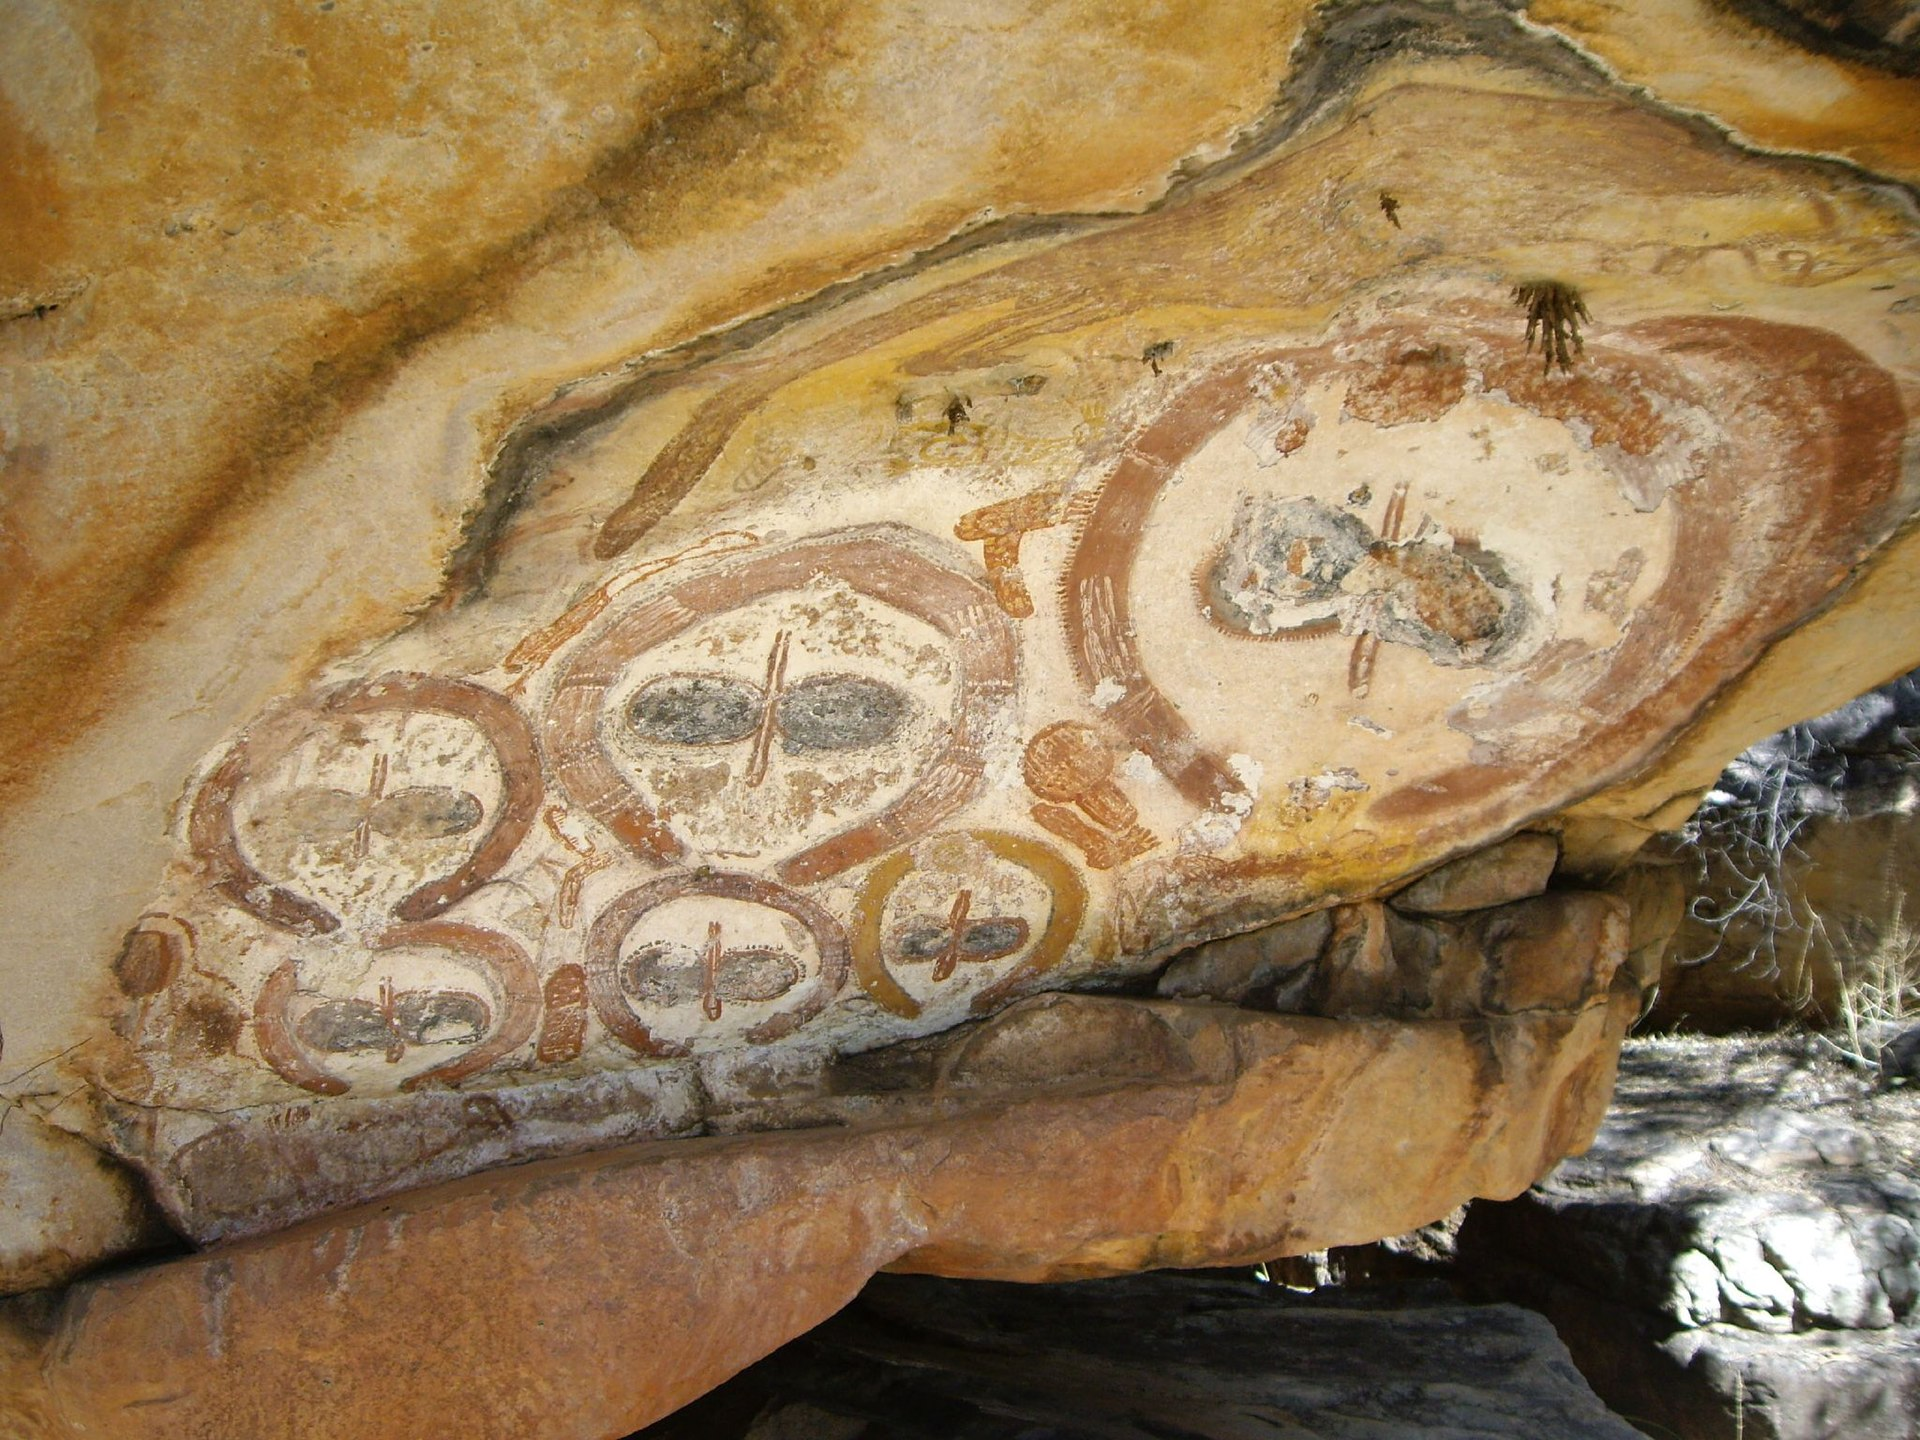 https://upload.wikimedia.org/wikipedia/commons/thumb/9/9c/Wandjina_rock_art.jpg/1920px-Wandjina_rock_art.jpg